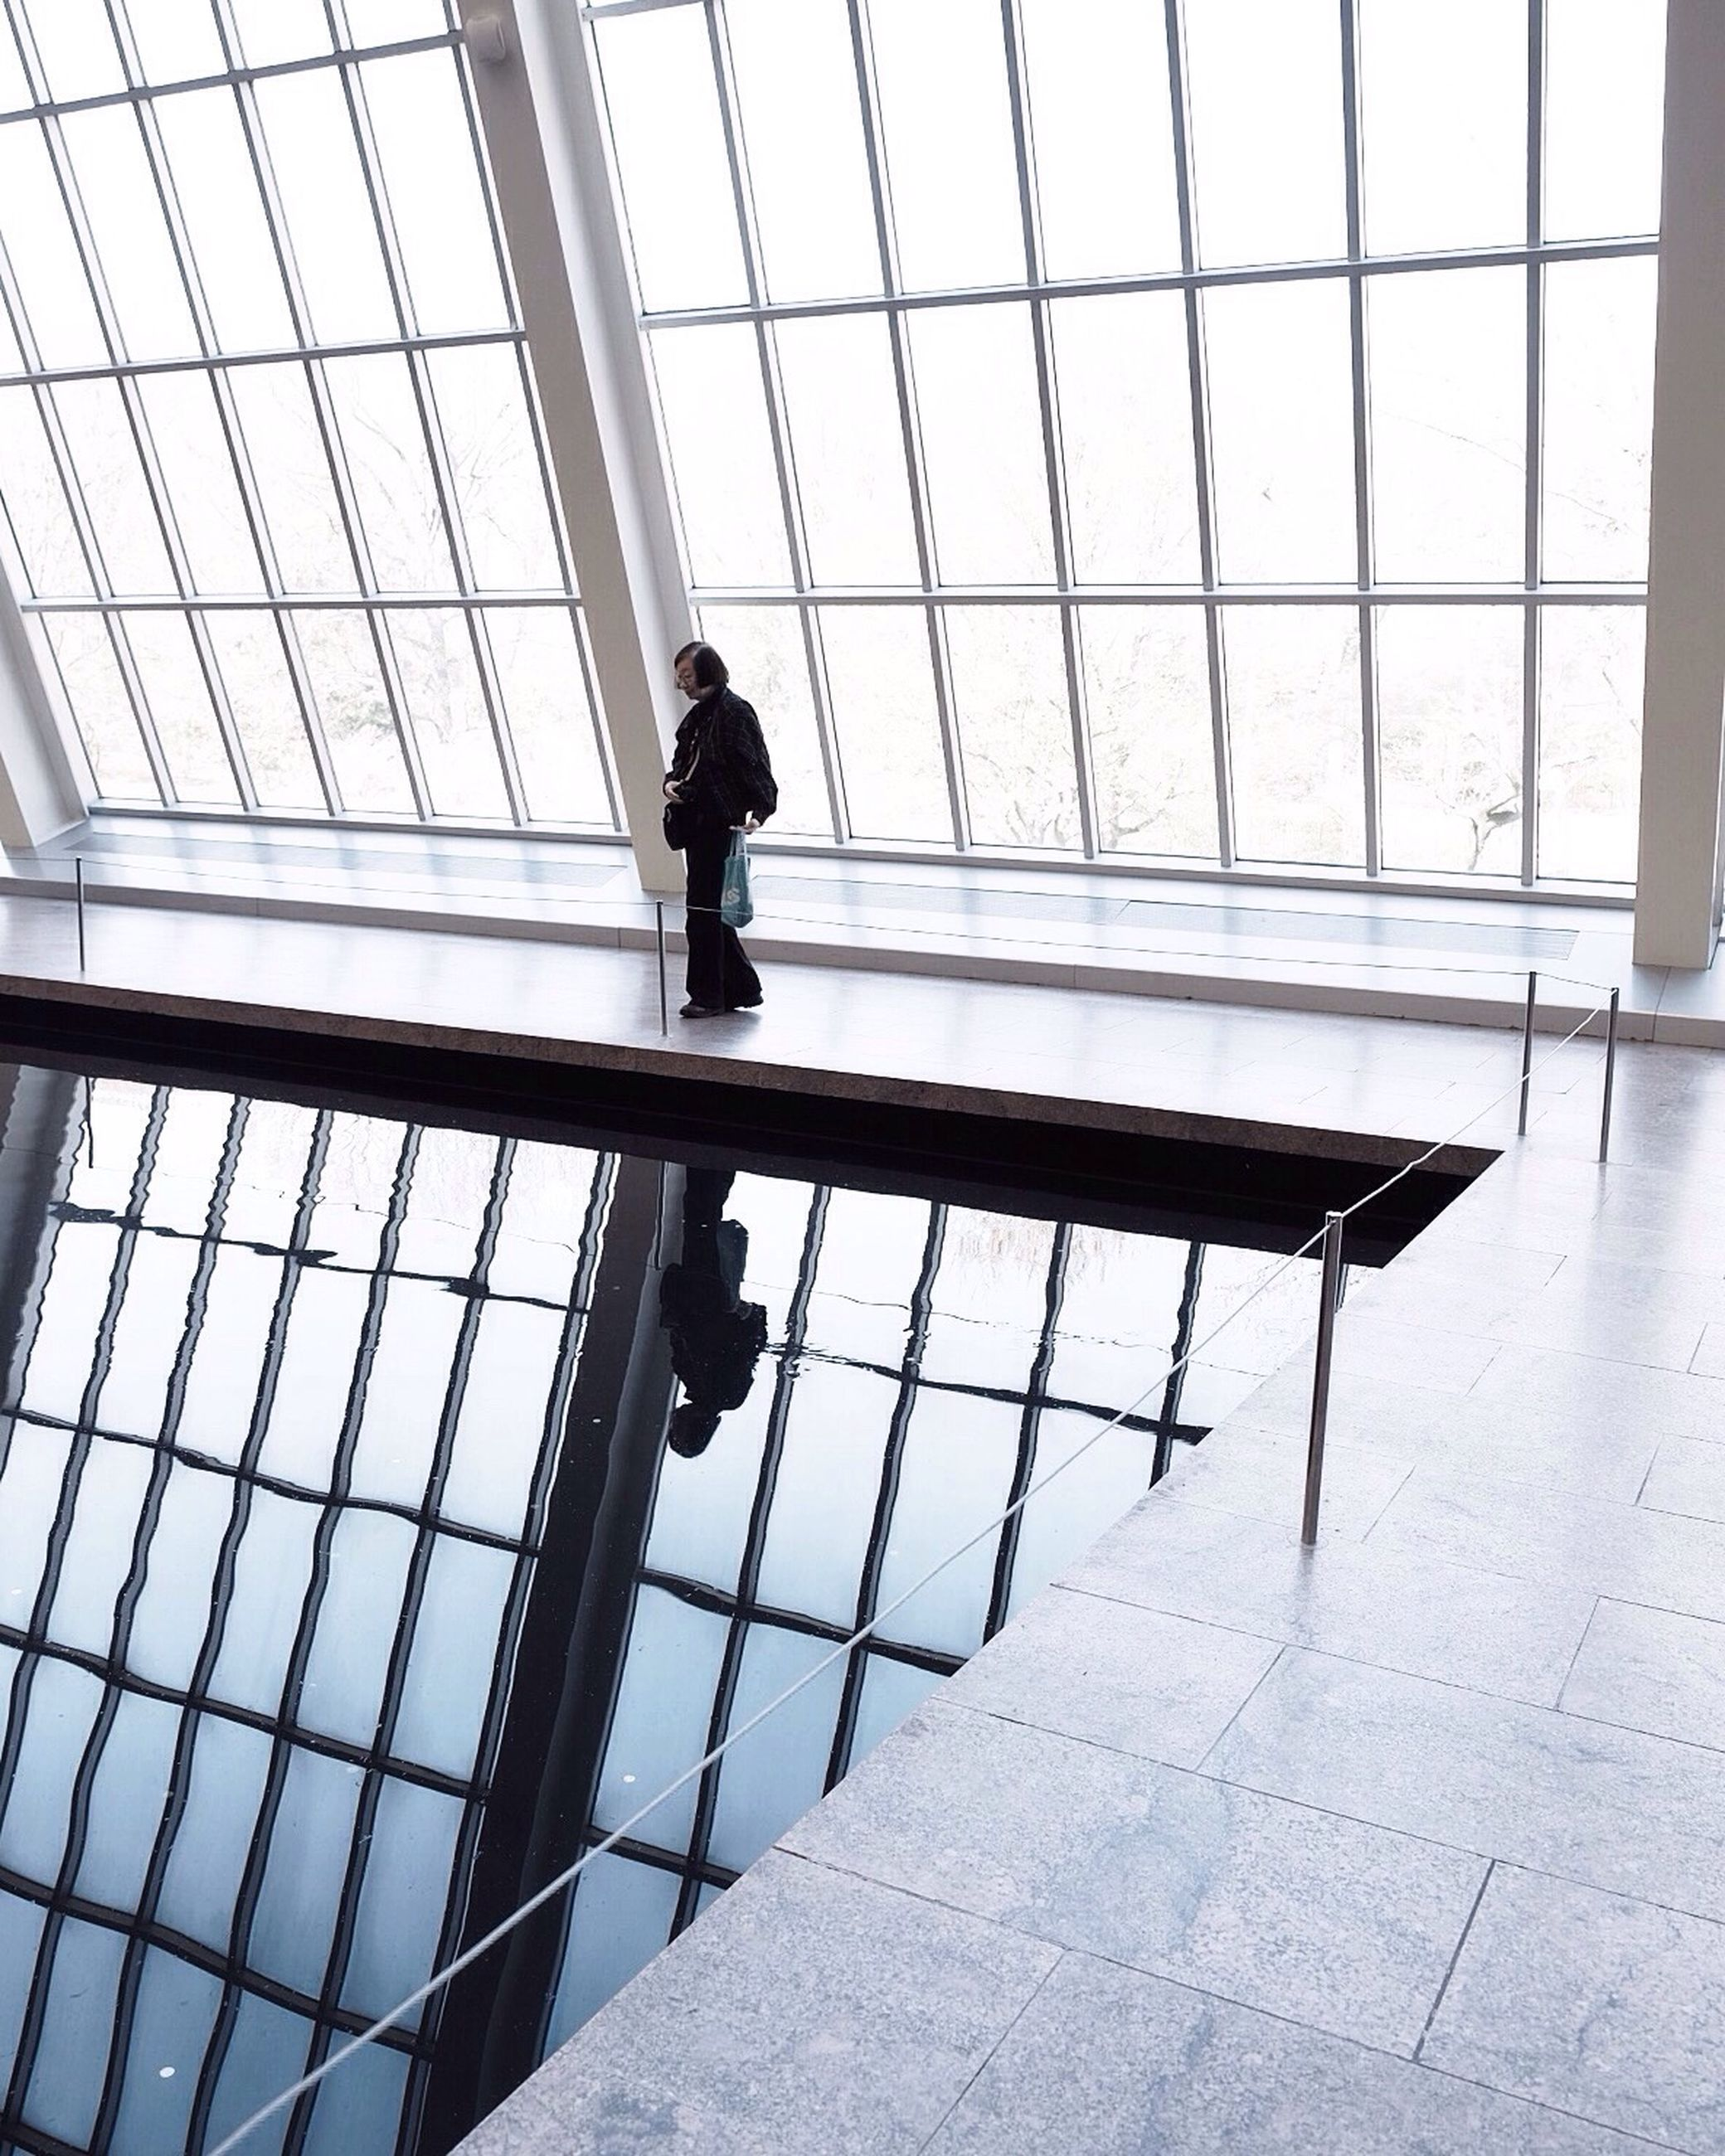 indoors, full length, architecture, built structure, men, lifestyles, glass - material, walking, window, rear view, silhouette, standing, transparent, person, day, tiled floor, railing, leisure activity